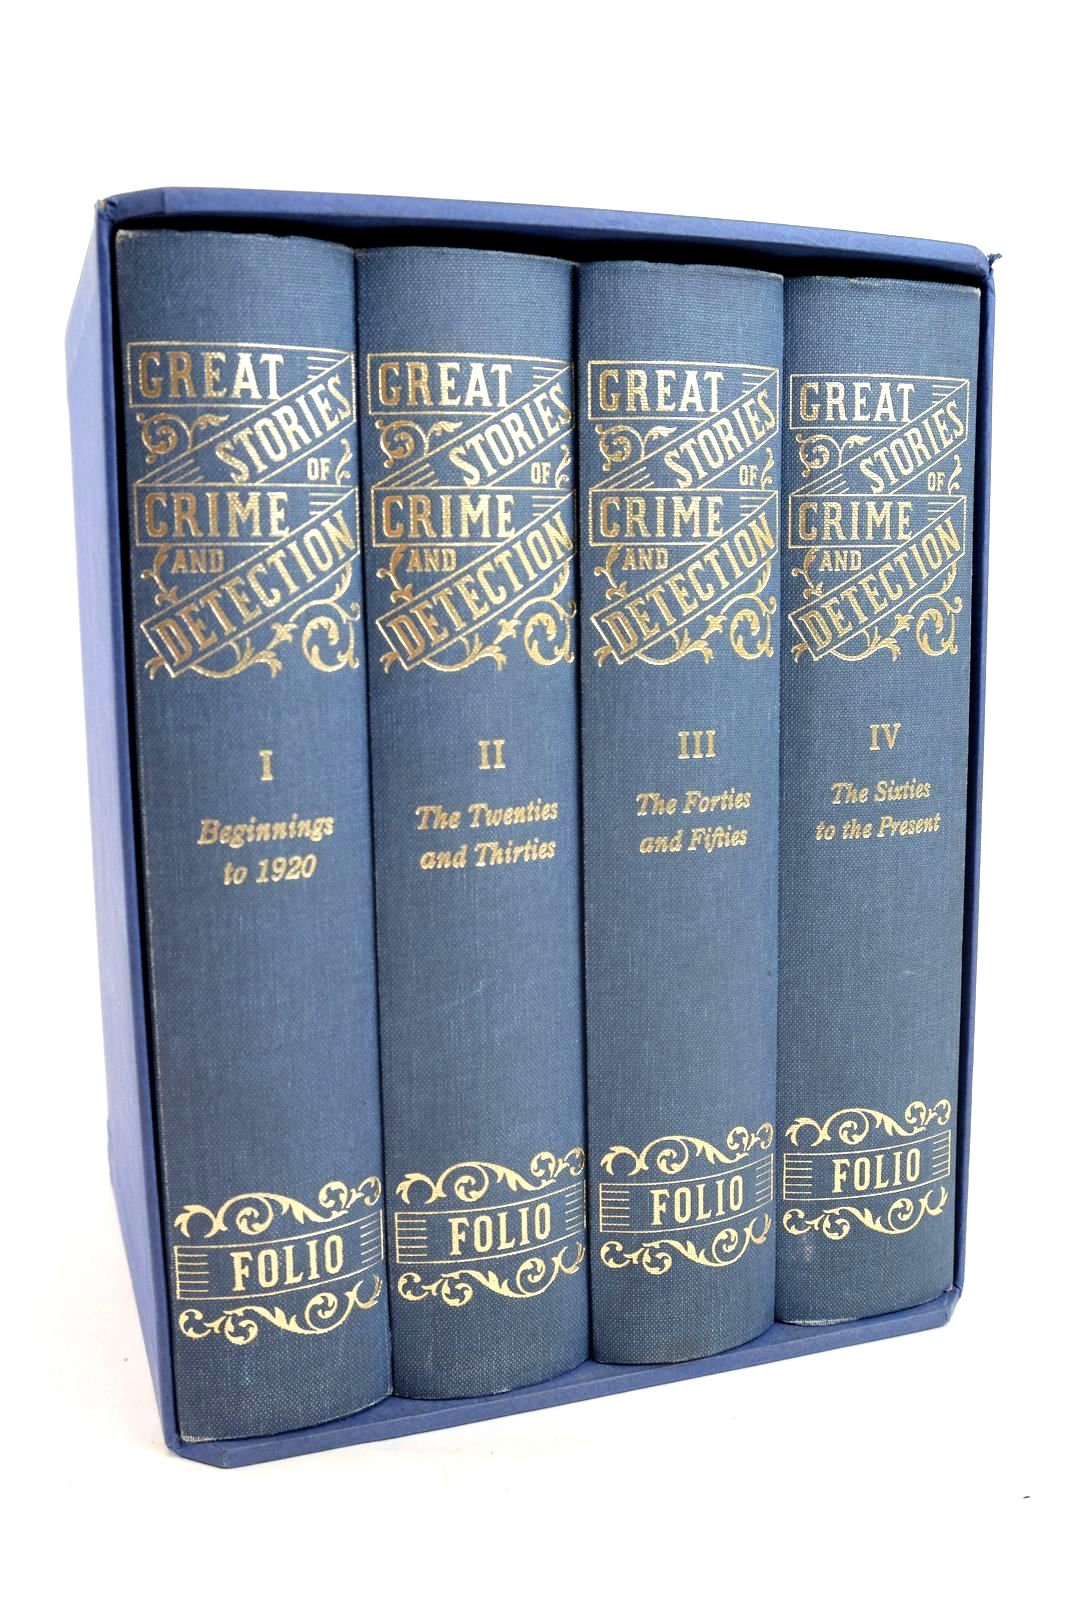 Photo of GREAT STORIES OF CRIME AND DETECTION (4 VOLUMES) written by Heald, Tim illustrated by Hardcastle, Nick published by Folio Society (STOCK CODE: 1320001)  for sale by Stella & Rose's Books